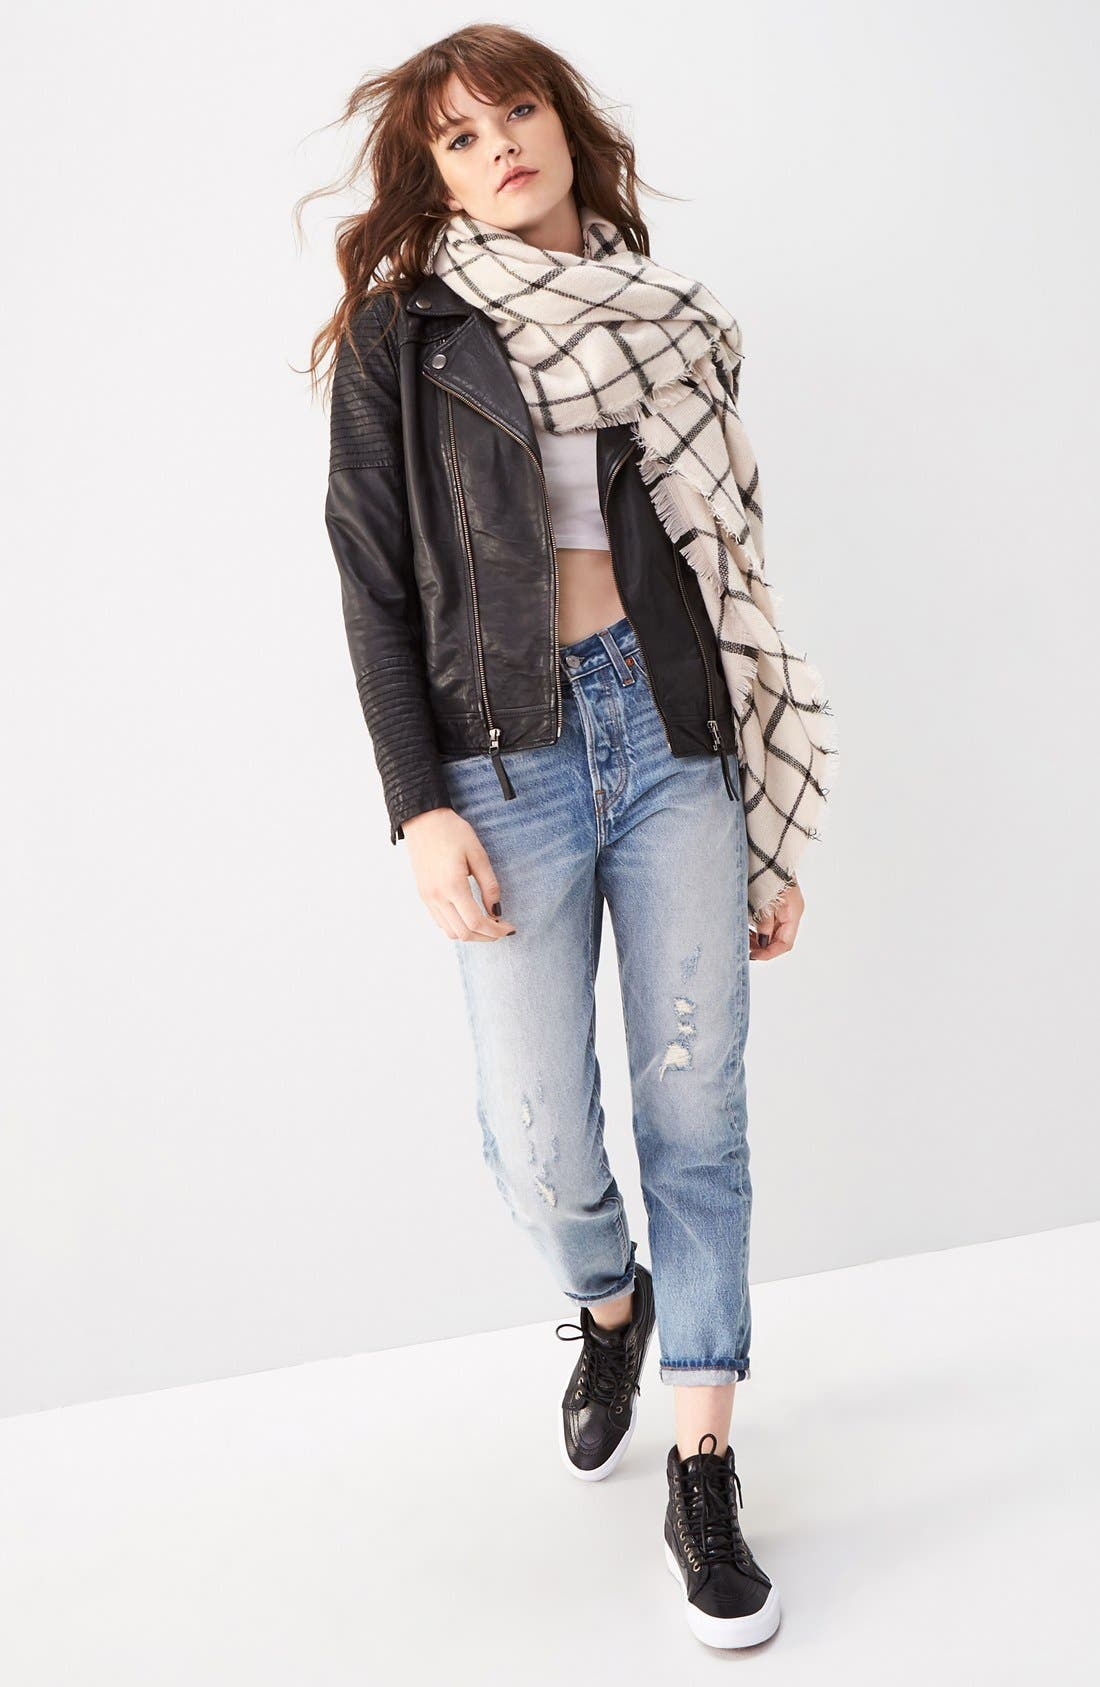 Treasure&Bond Jacket, BP. Tee, Scarf & Levi's® Jeans Outfit with Accessories